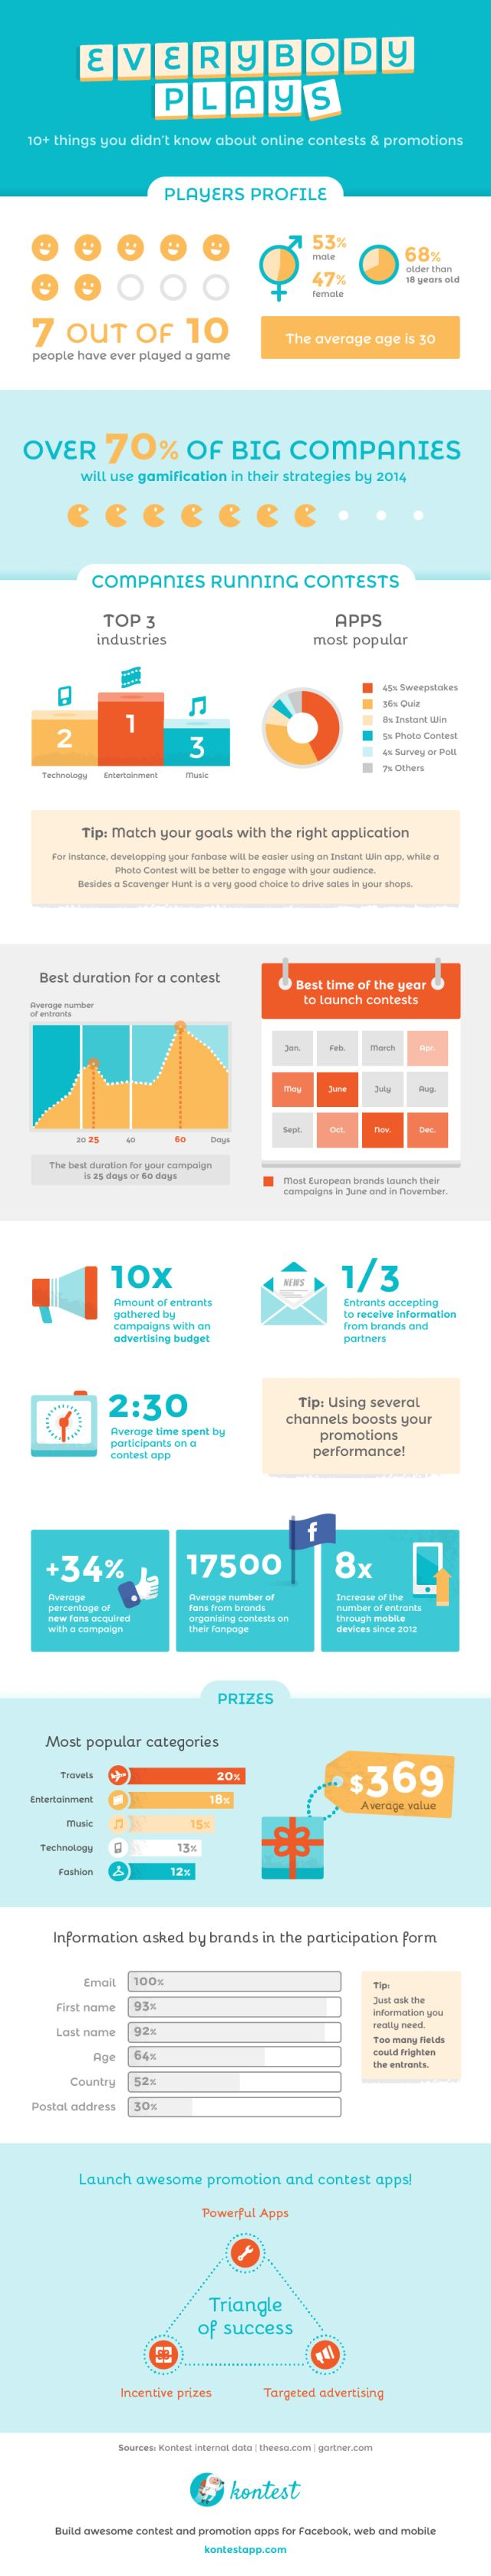 Infographics: 10 Things You Didn't Know about Online Contests